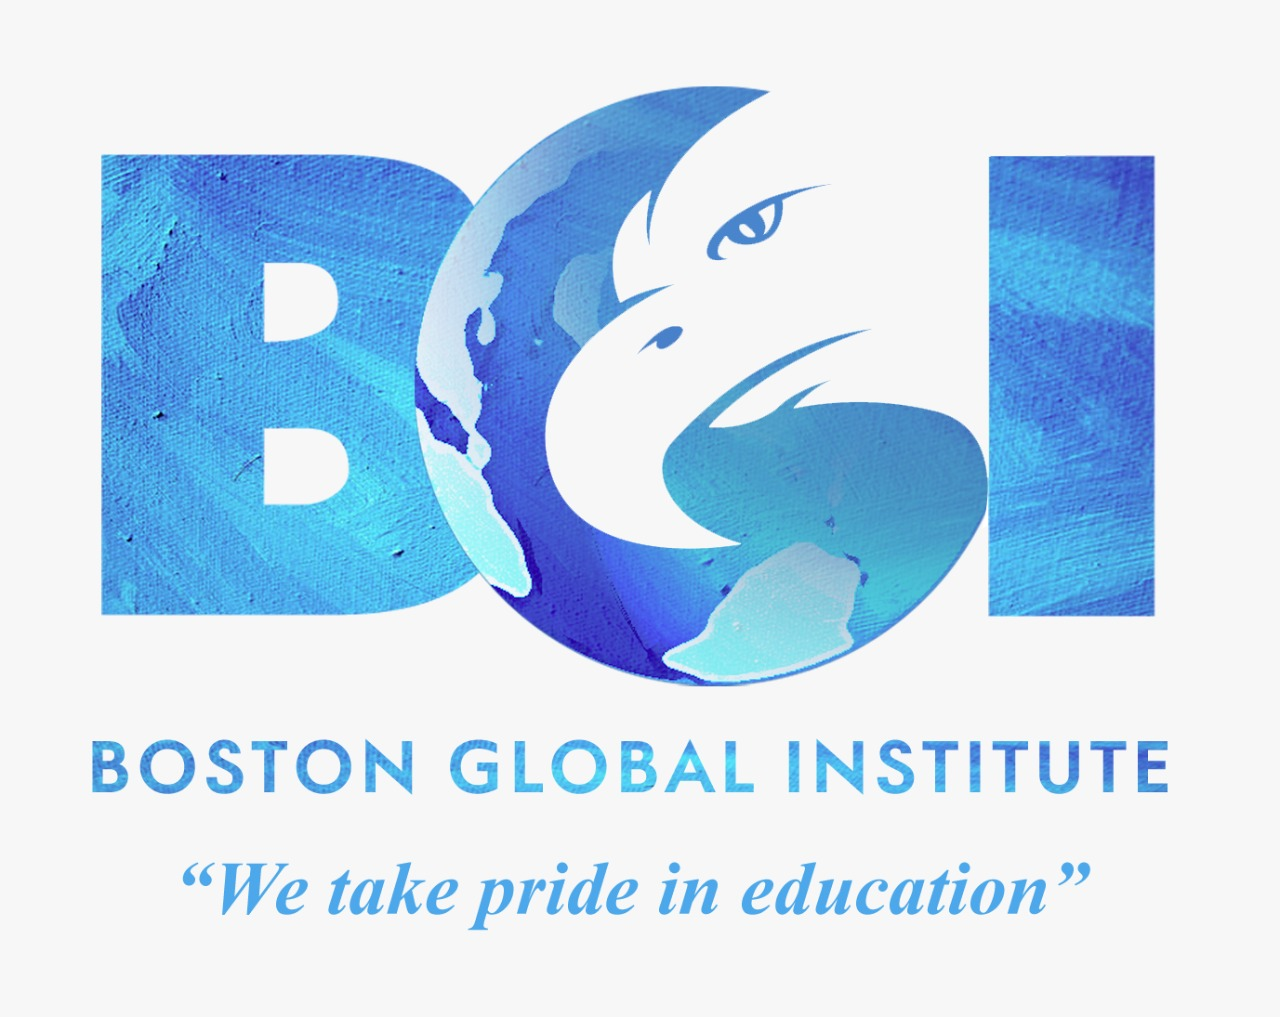 More about Boston Global Institute